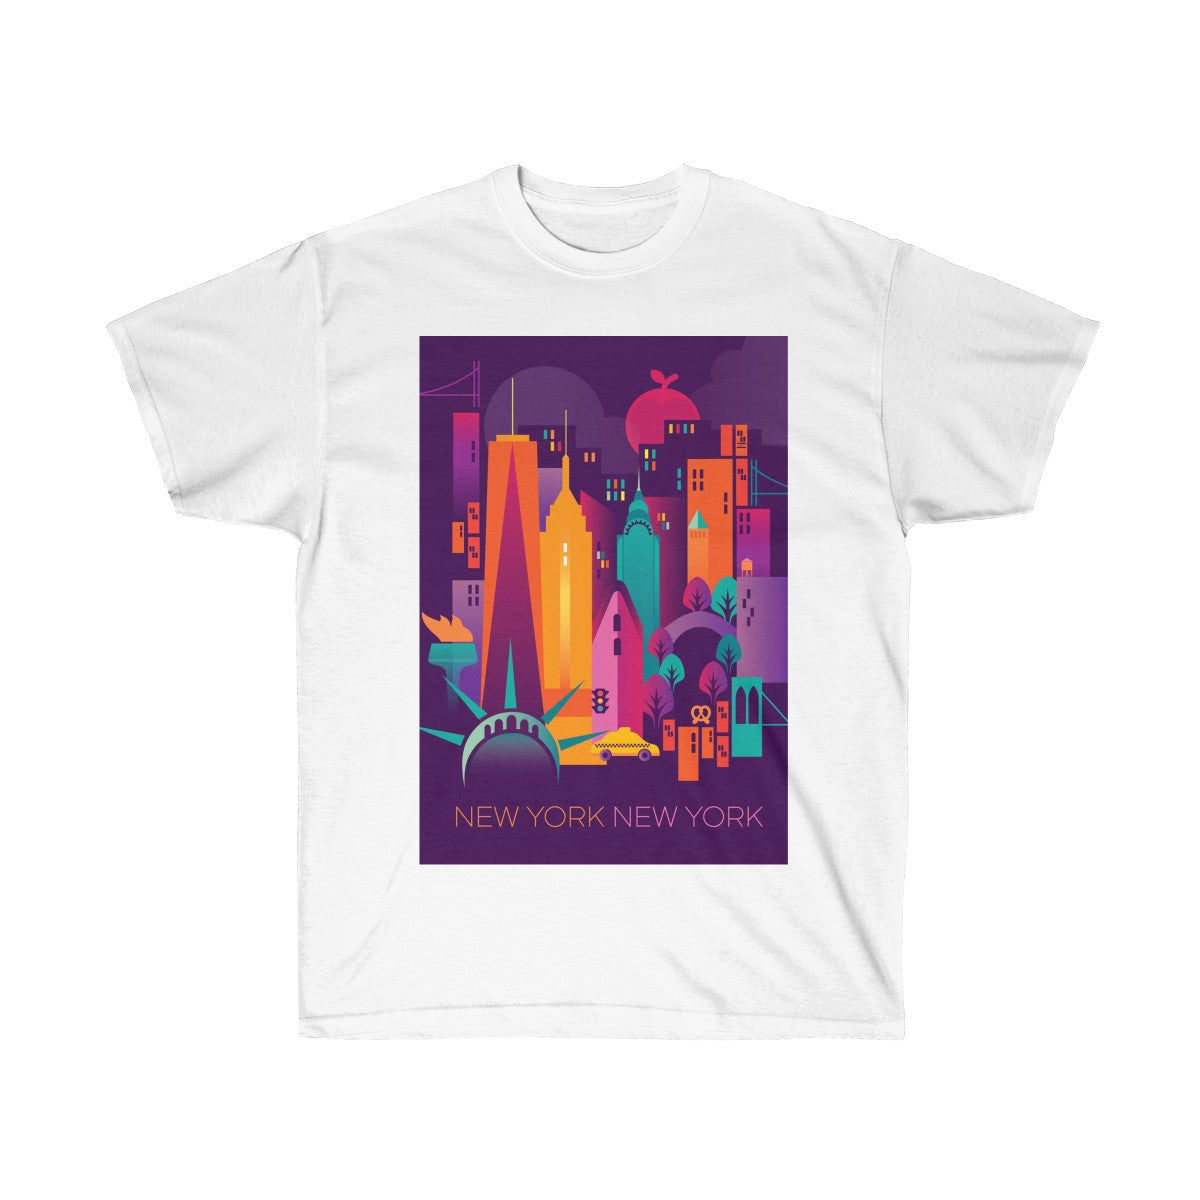 NEW YORK CITY UNISEX ULTRA COTTON TEE